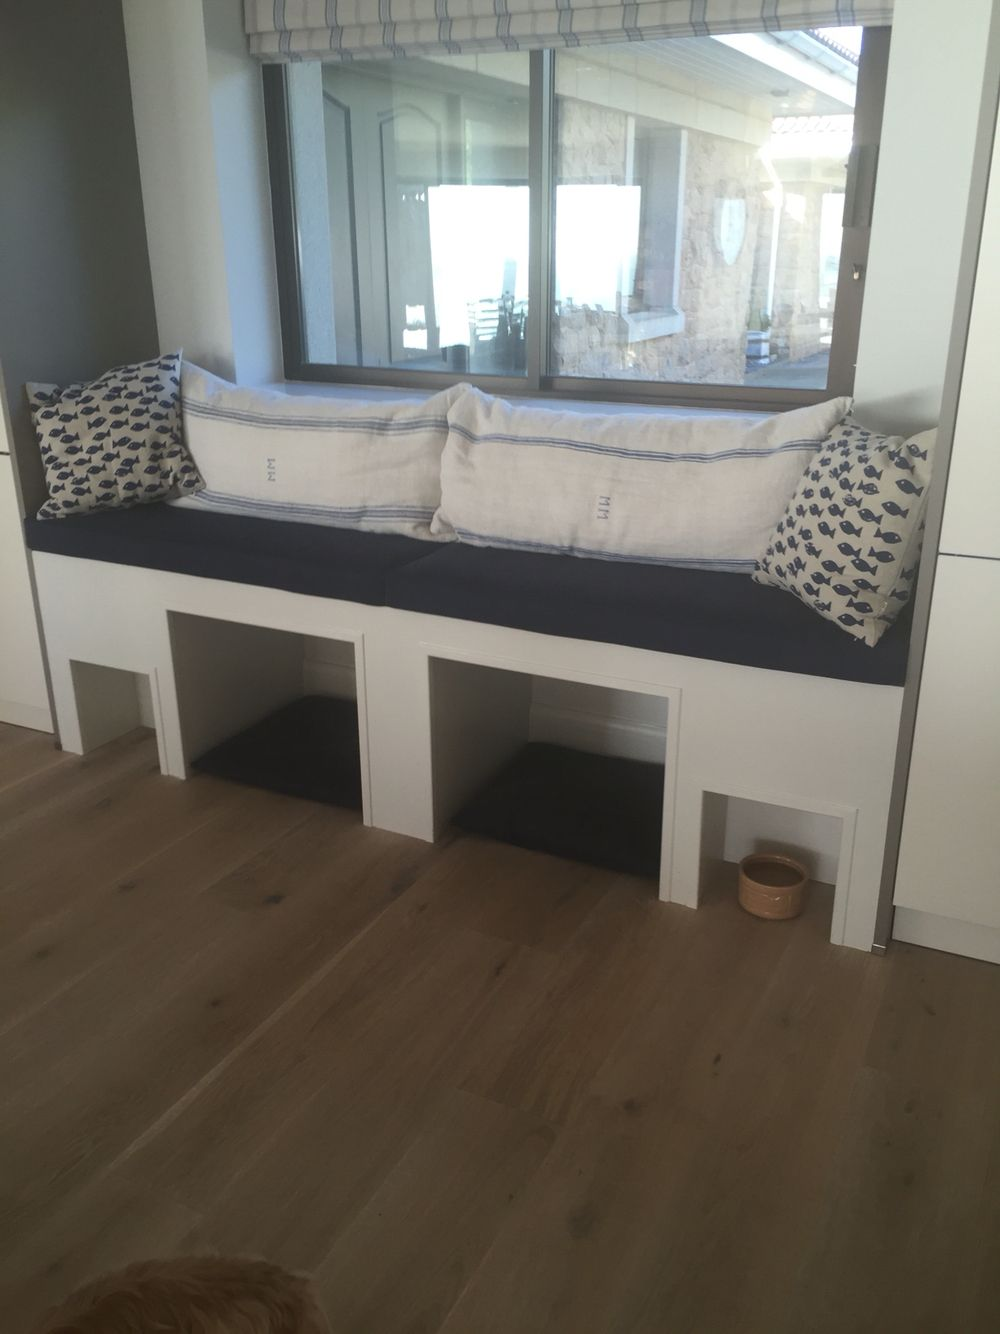 Built In Dogs Bed Window Seat Amp Feeding Area My Home